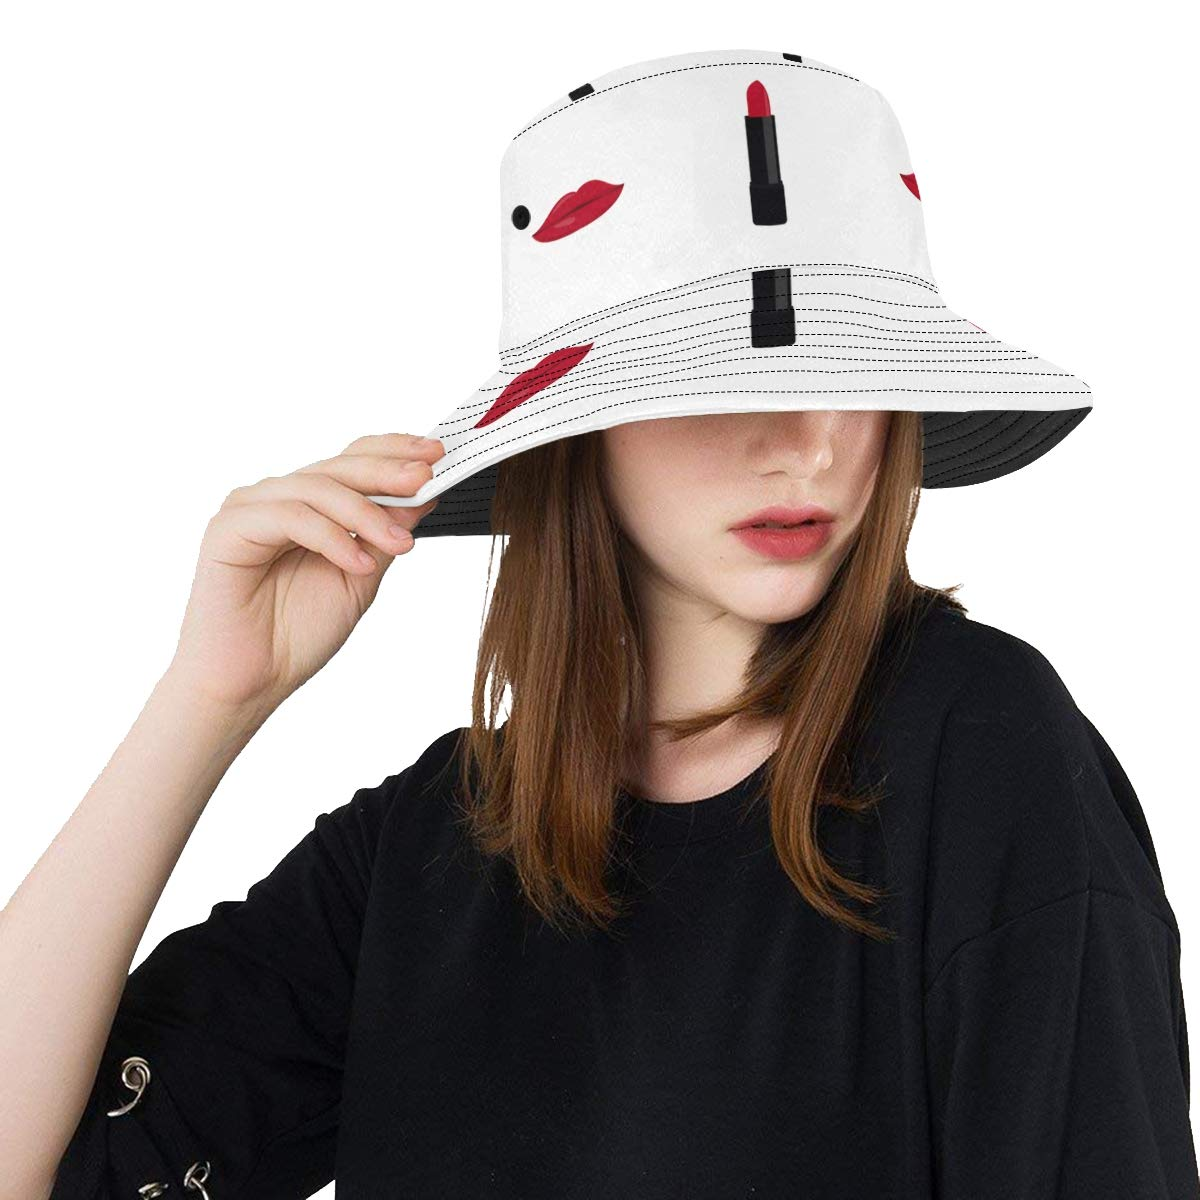 Red Kiss and Lipstick Girl Favorite New Summer Unisex Cotton Fashion Fishing Sun Bucket Hats for Kid Teens Women and Men with Customize Top Packable Fisherman Cap for Outdoor Travel